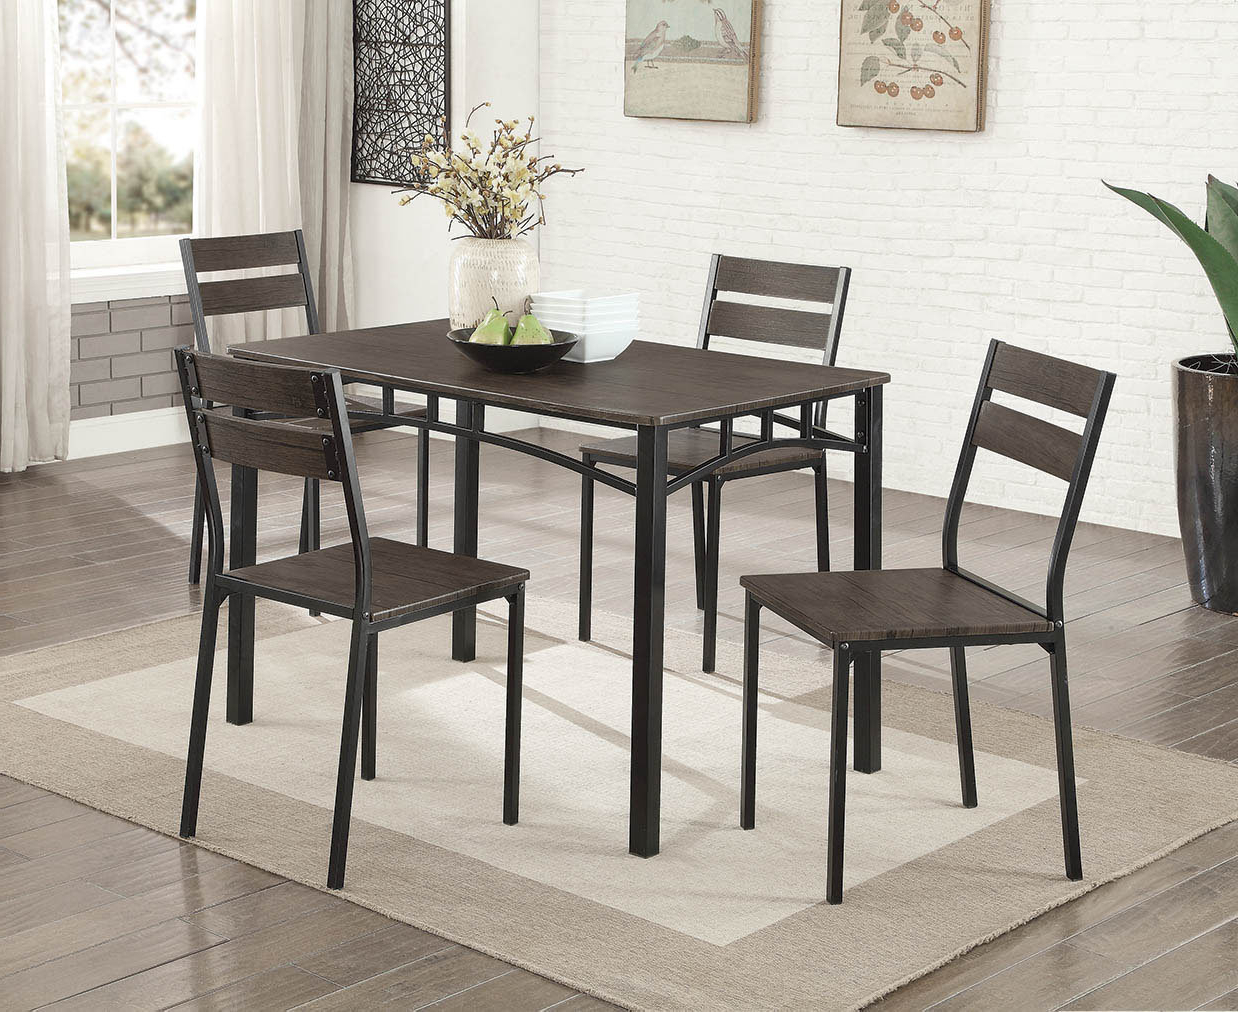 Autberry 5 Piece Dining Set In Recent Maynard 5 Piece Dining Sets (Gallery 2 of 20)